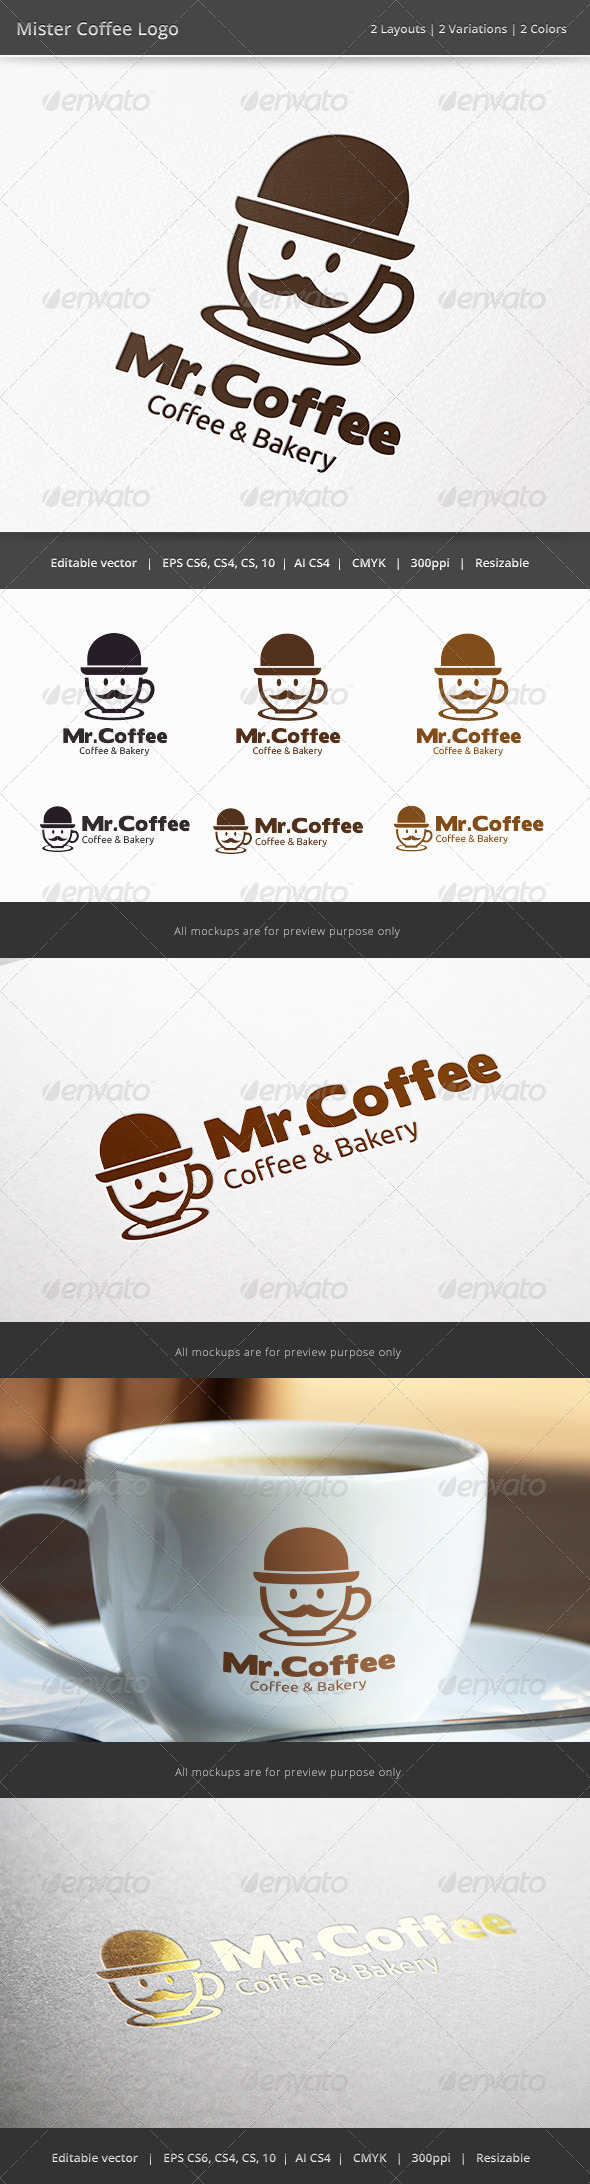 GraphicRiver Mister Coffee Logo 6755923